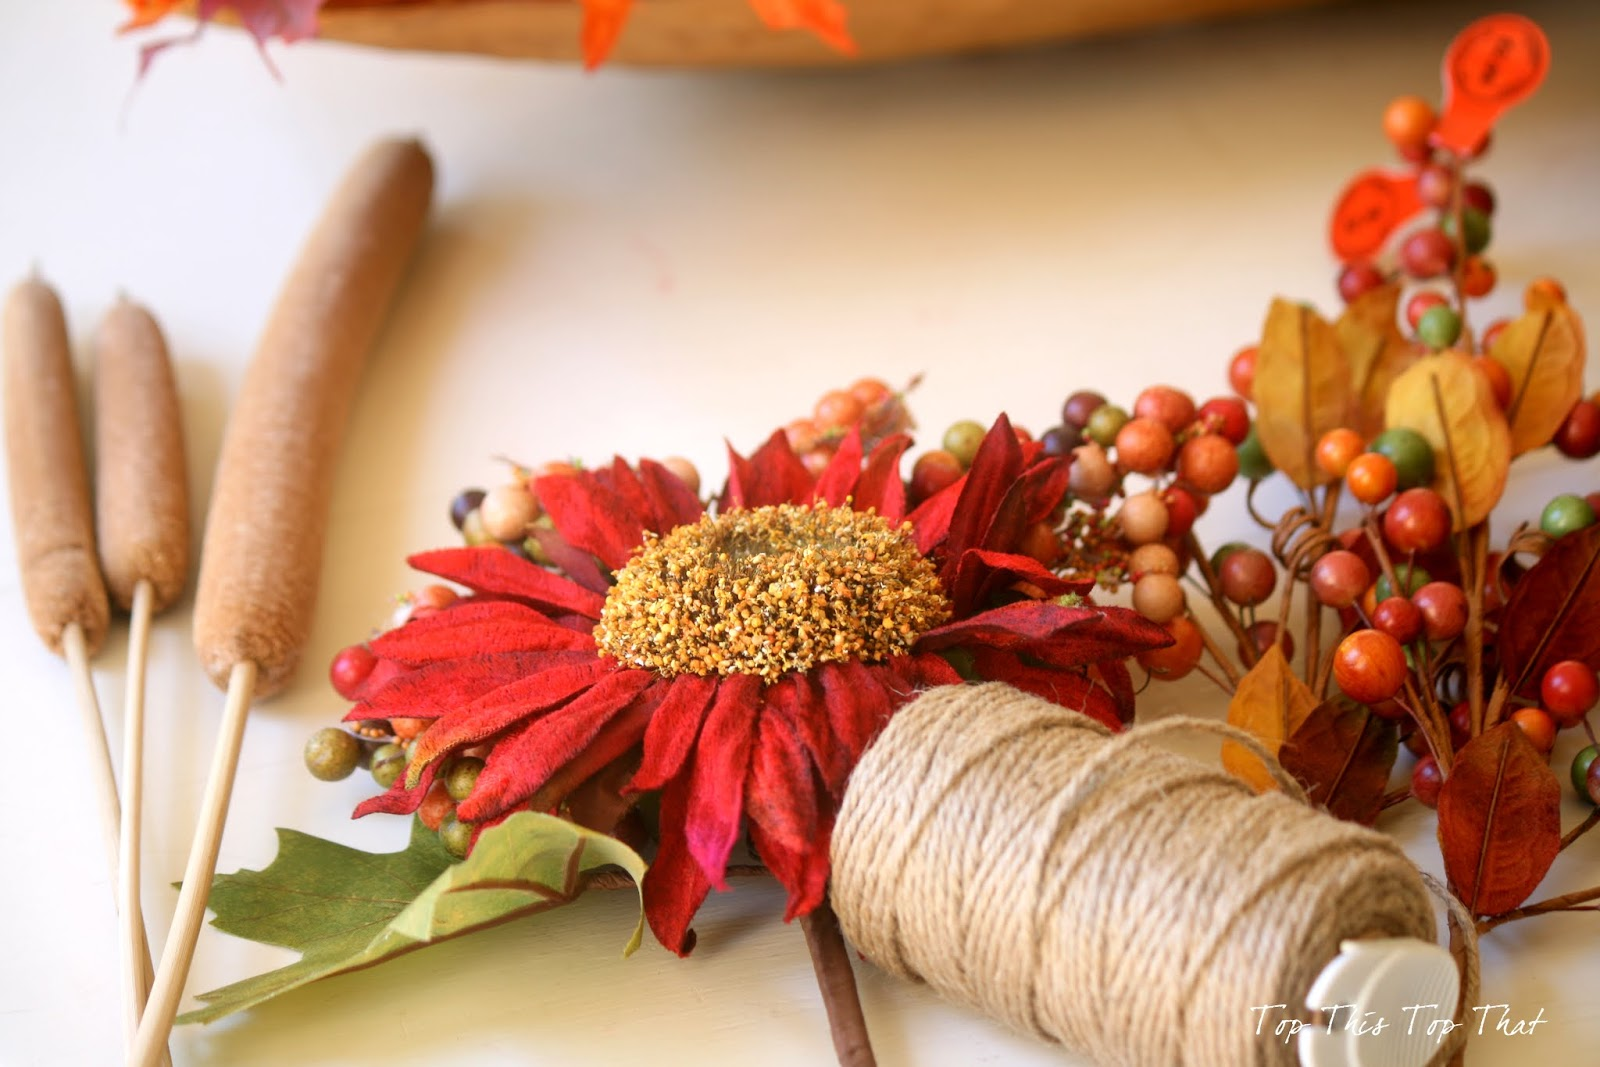 The easiest fall burlap wreath tutorial elegant interiors decor accents - Fall natural decor ideas rich colors ...